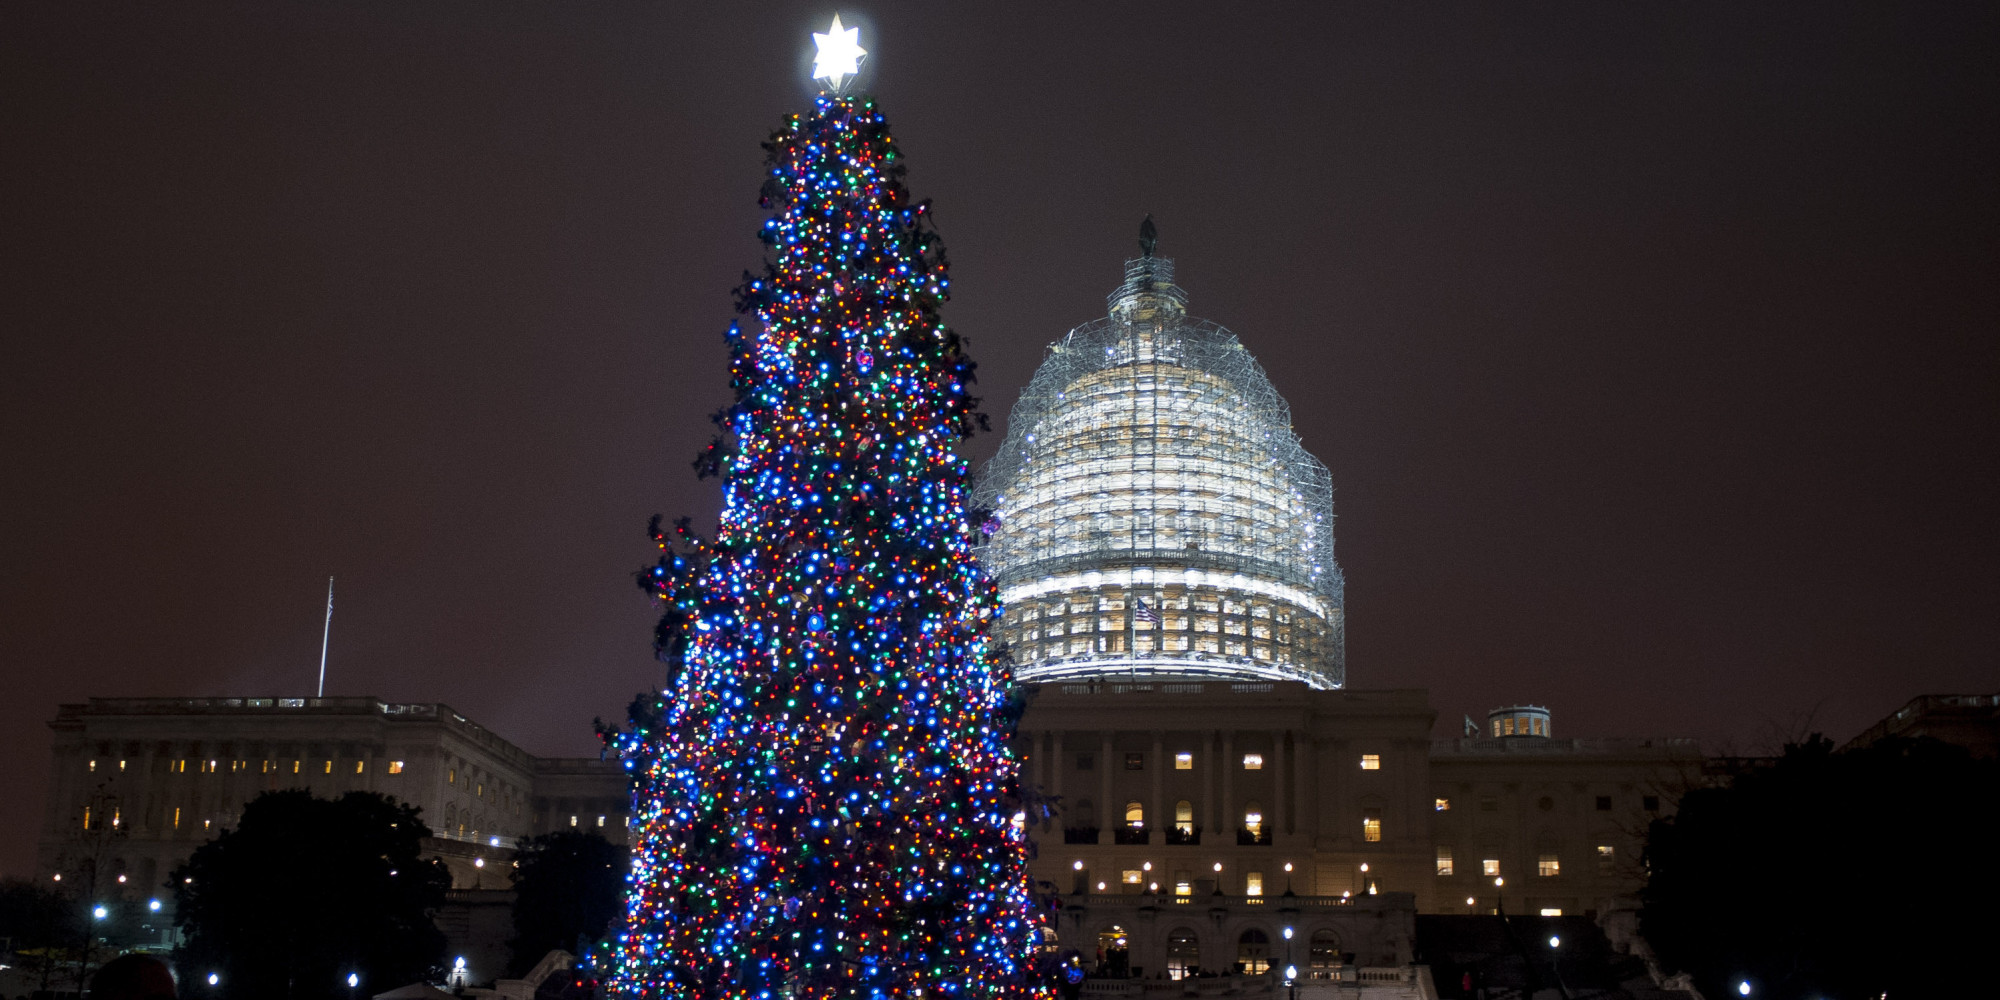 O CAPITOL CHRISTMAS TREE Facebook